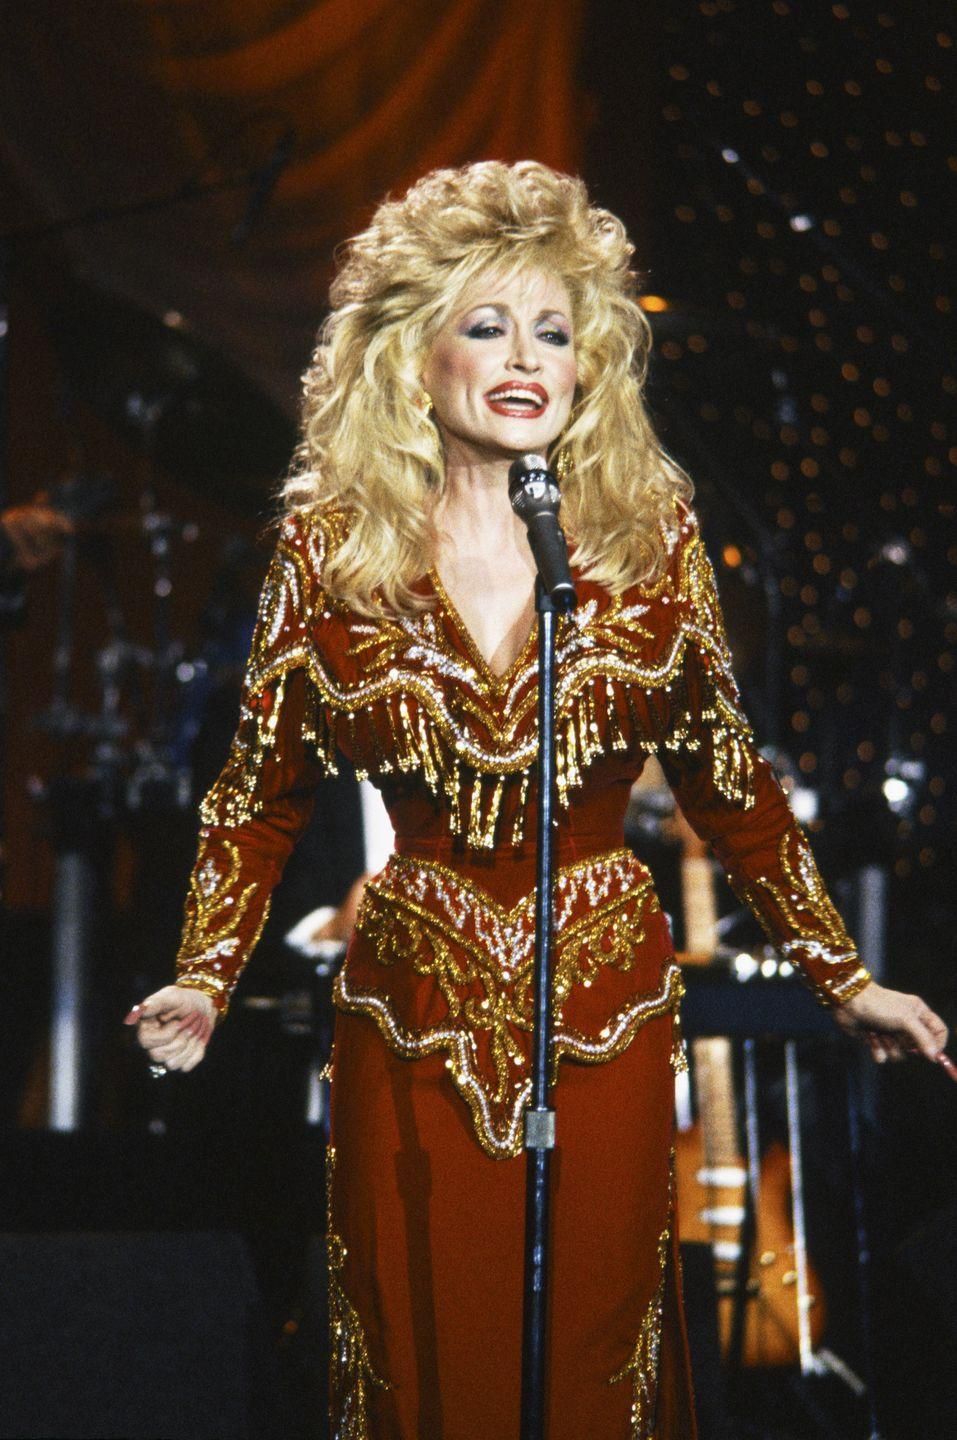 """<p>Dolly dazzles here in a brick red dress embellished with a variety of golden accents for a performance on """"The Johnny Carson Show."""" She plays up the country-fied style of the 1970s in a more modern way for the '80s. </p>"""